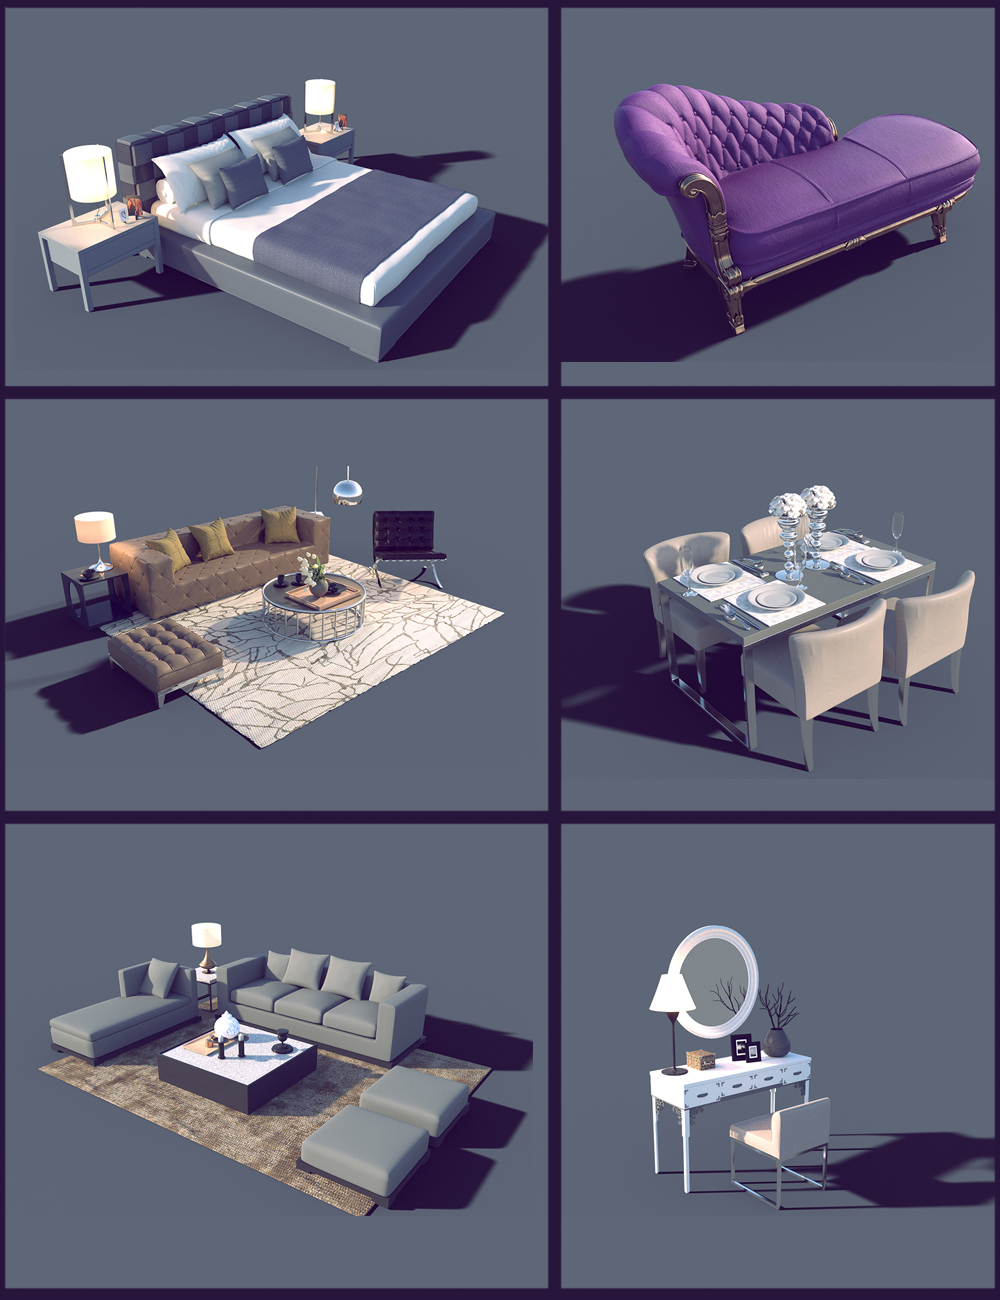 Interior Furniture 03 by: Polish, 3D Models by Daz 3D